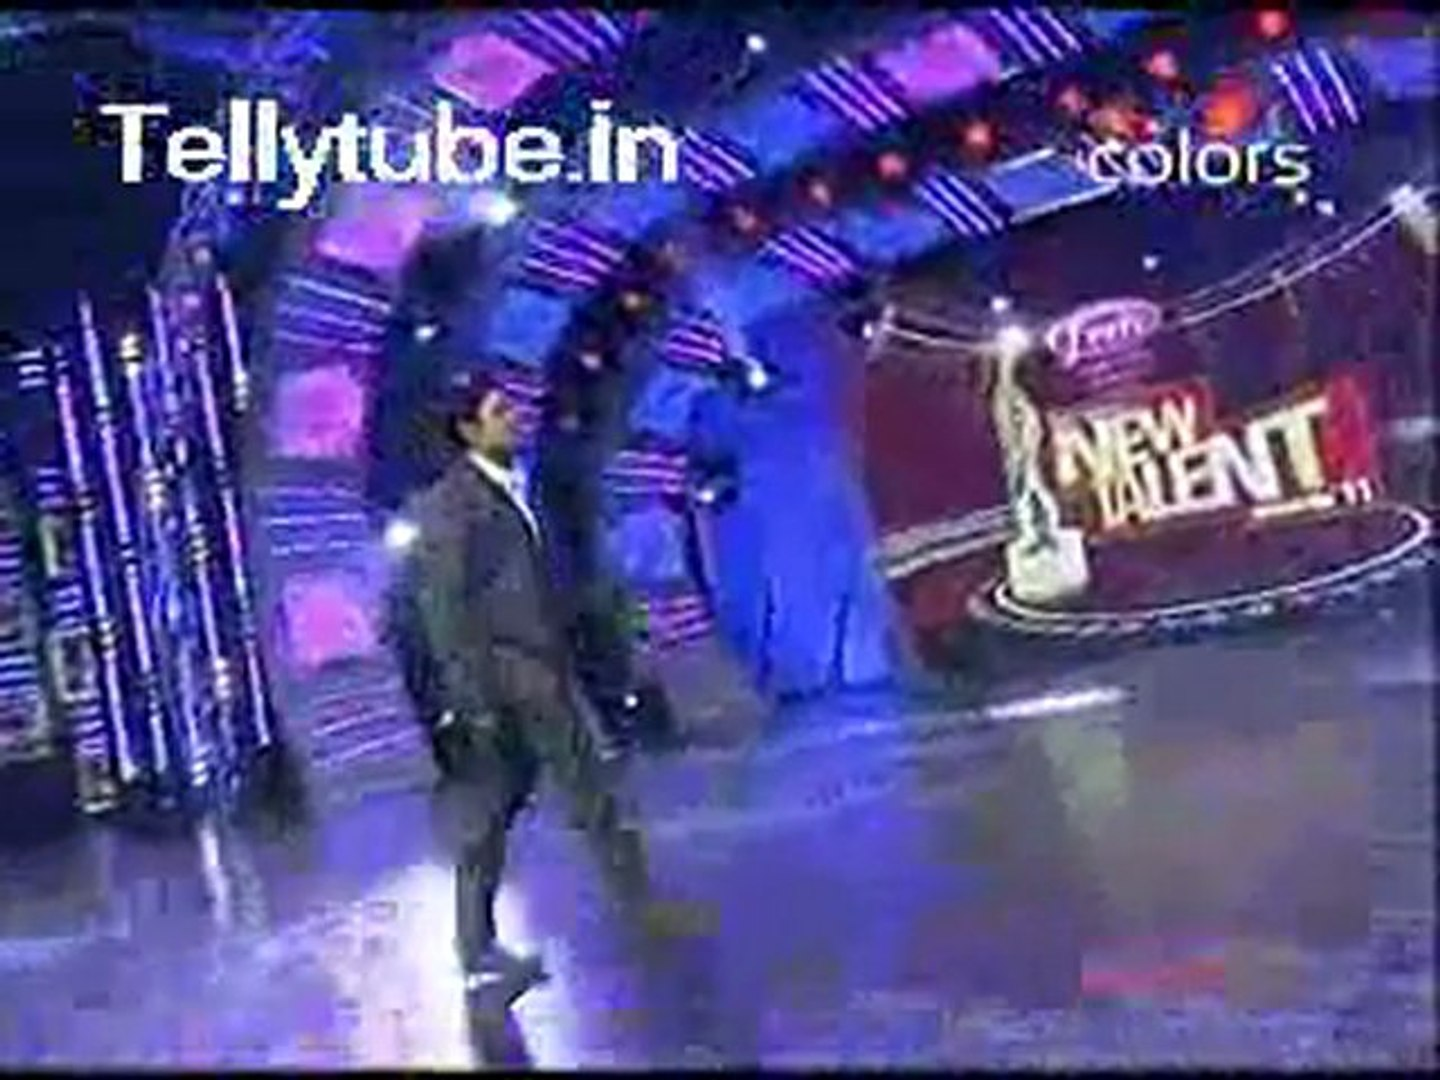 New Talent Awards 2011-16th October 2011 Part 4 By Tellytube.in